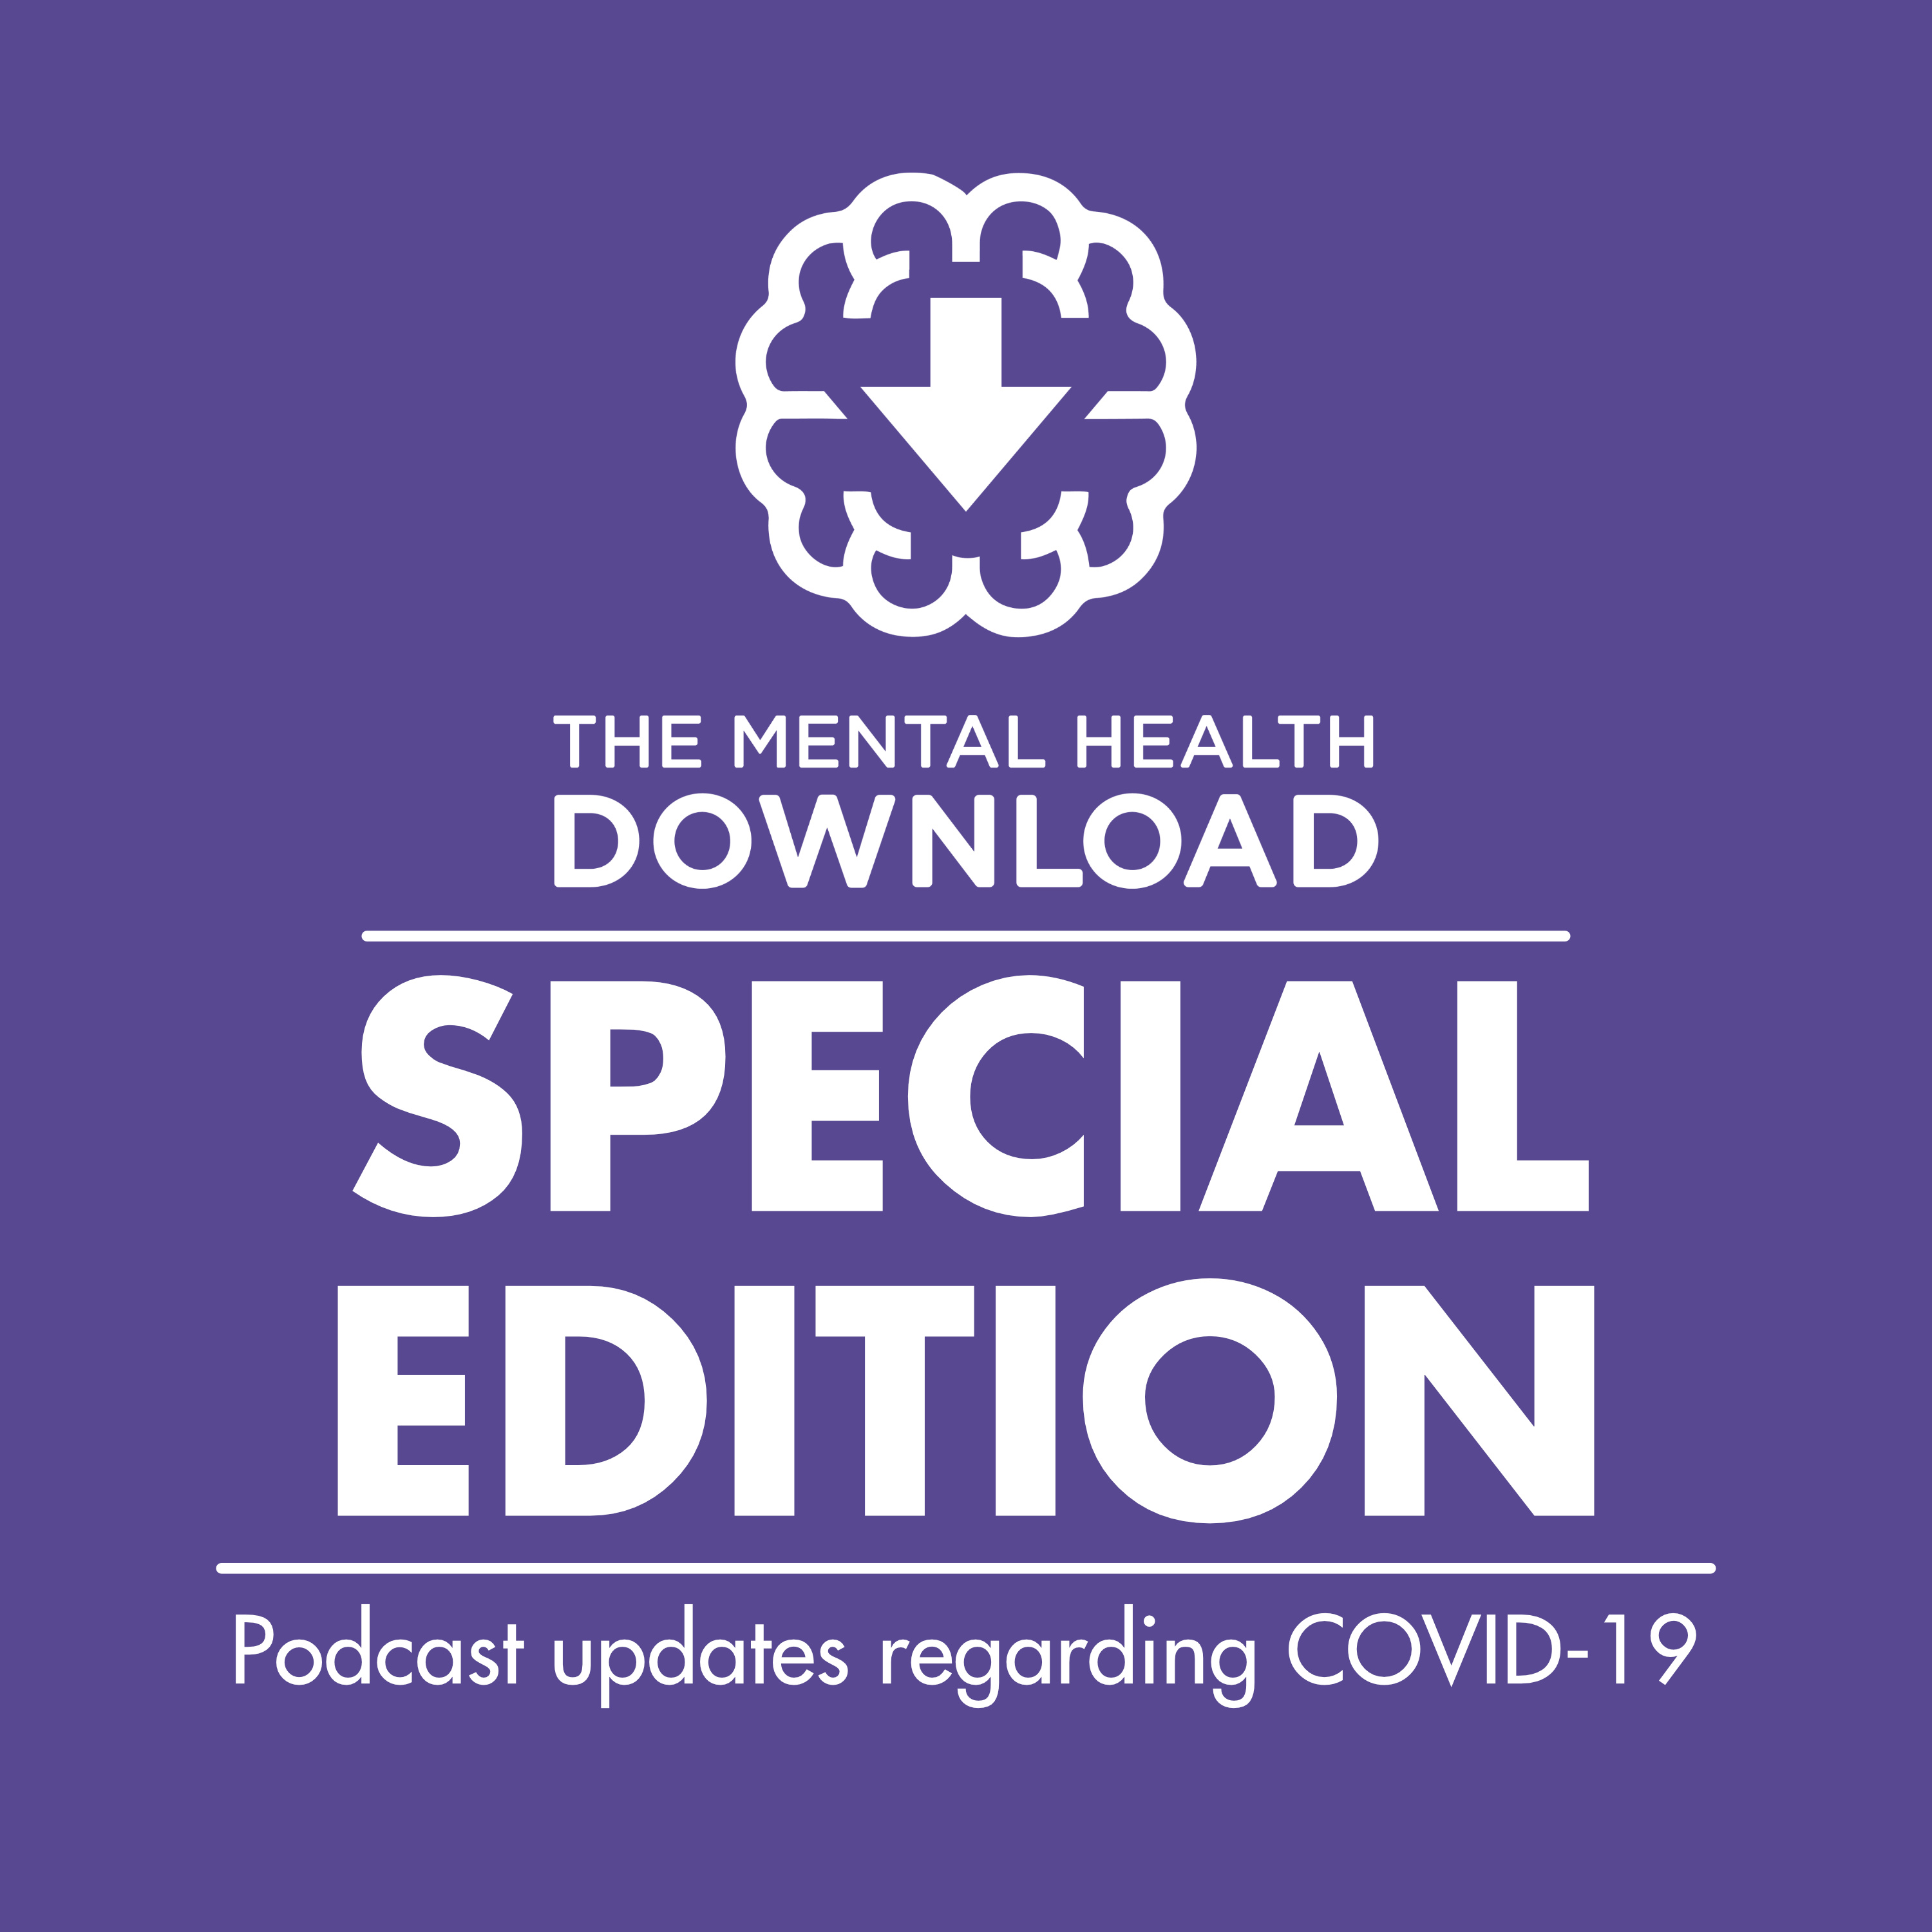 Mental Health Download: Exploring Mental Illness, Suicide, Homelessness and Incarceration - COVID-19 Series: TFD's Michael Baker on 10 Days of Quarantine